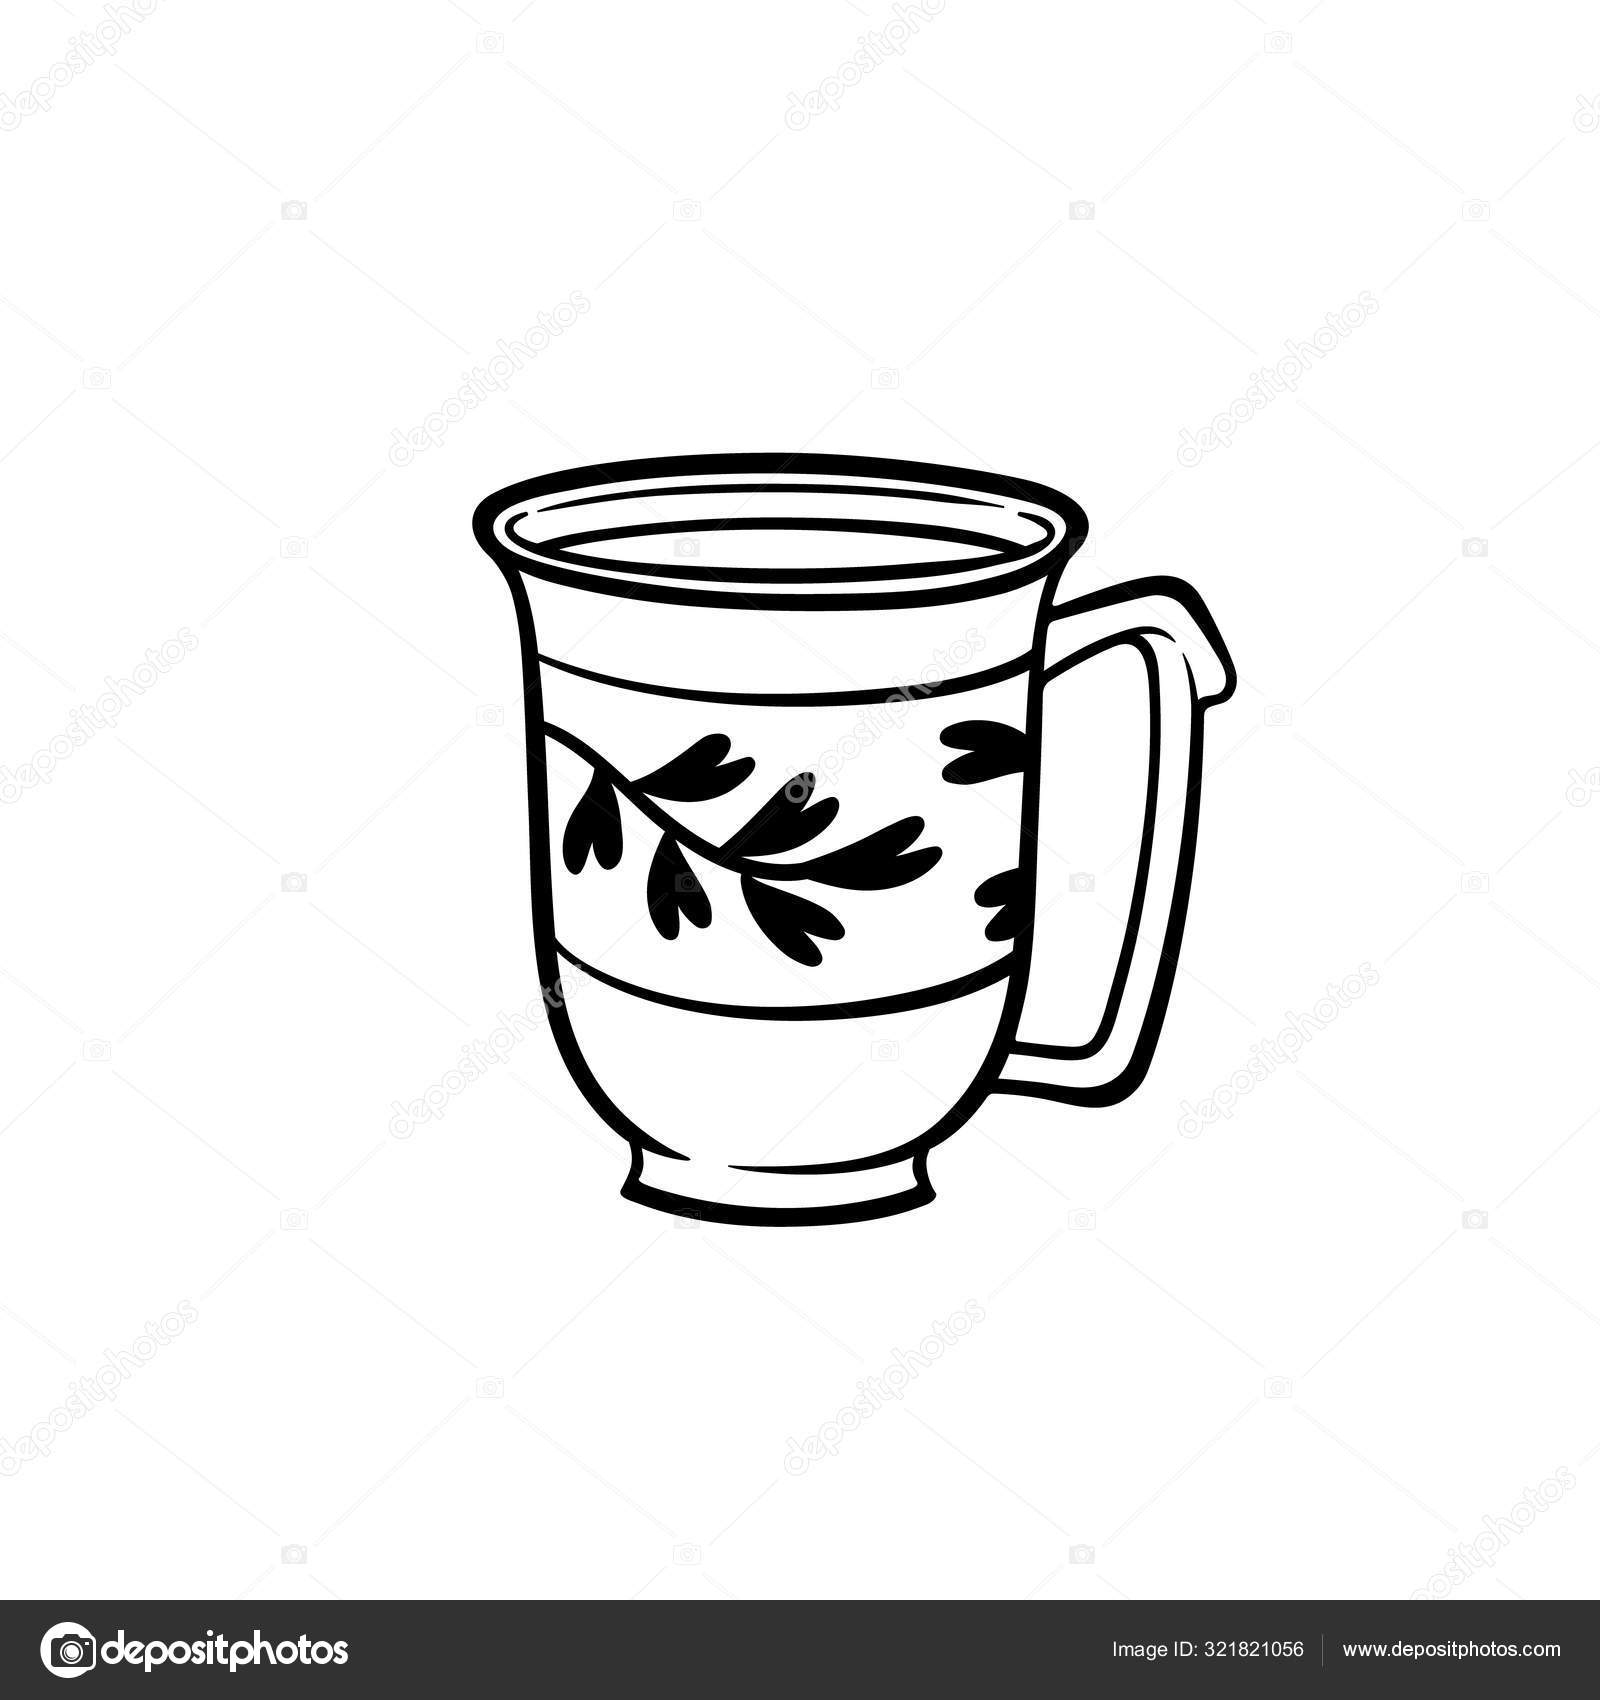 Cute Doodle Mug Branch Vector Stock Illustration Ceramic Mug Stock Stock Vector C Tomapoma 321821056